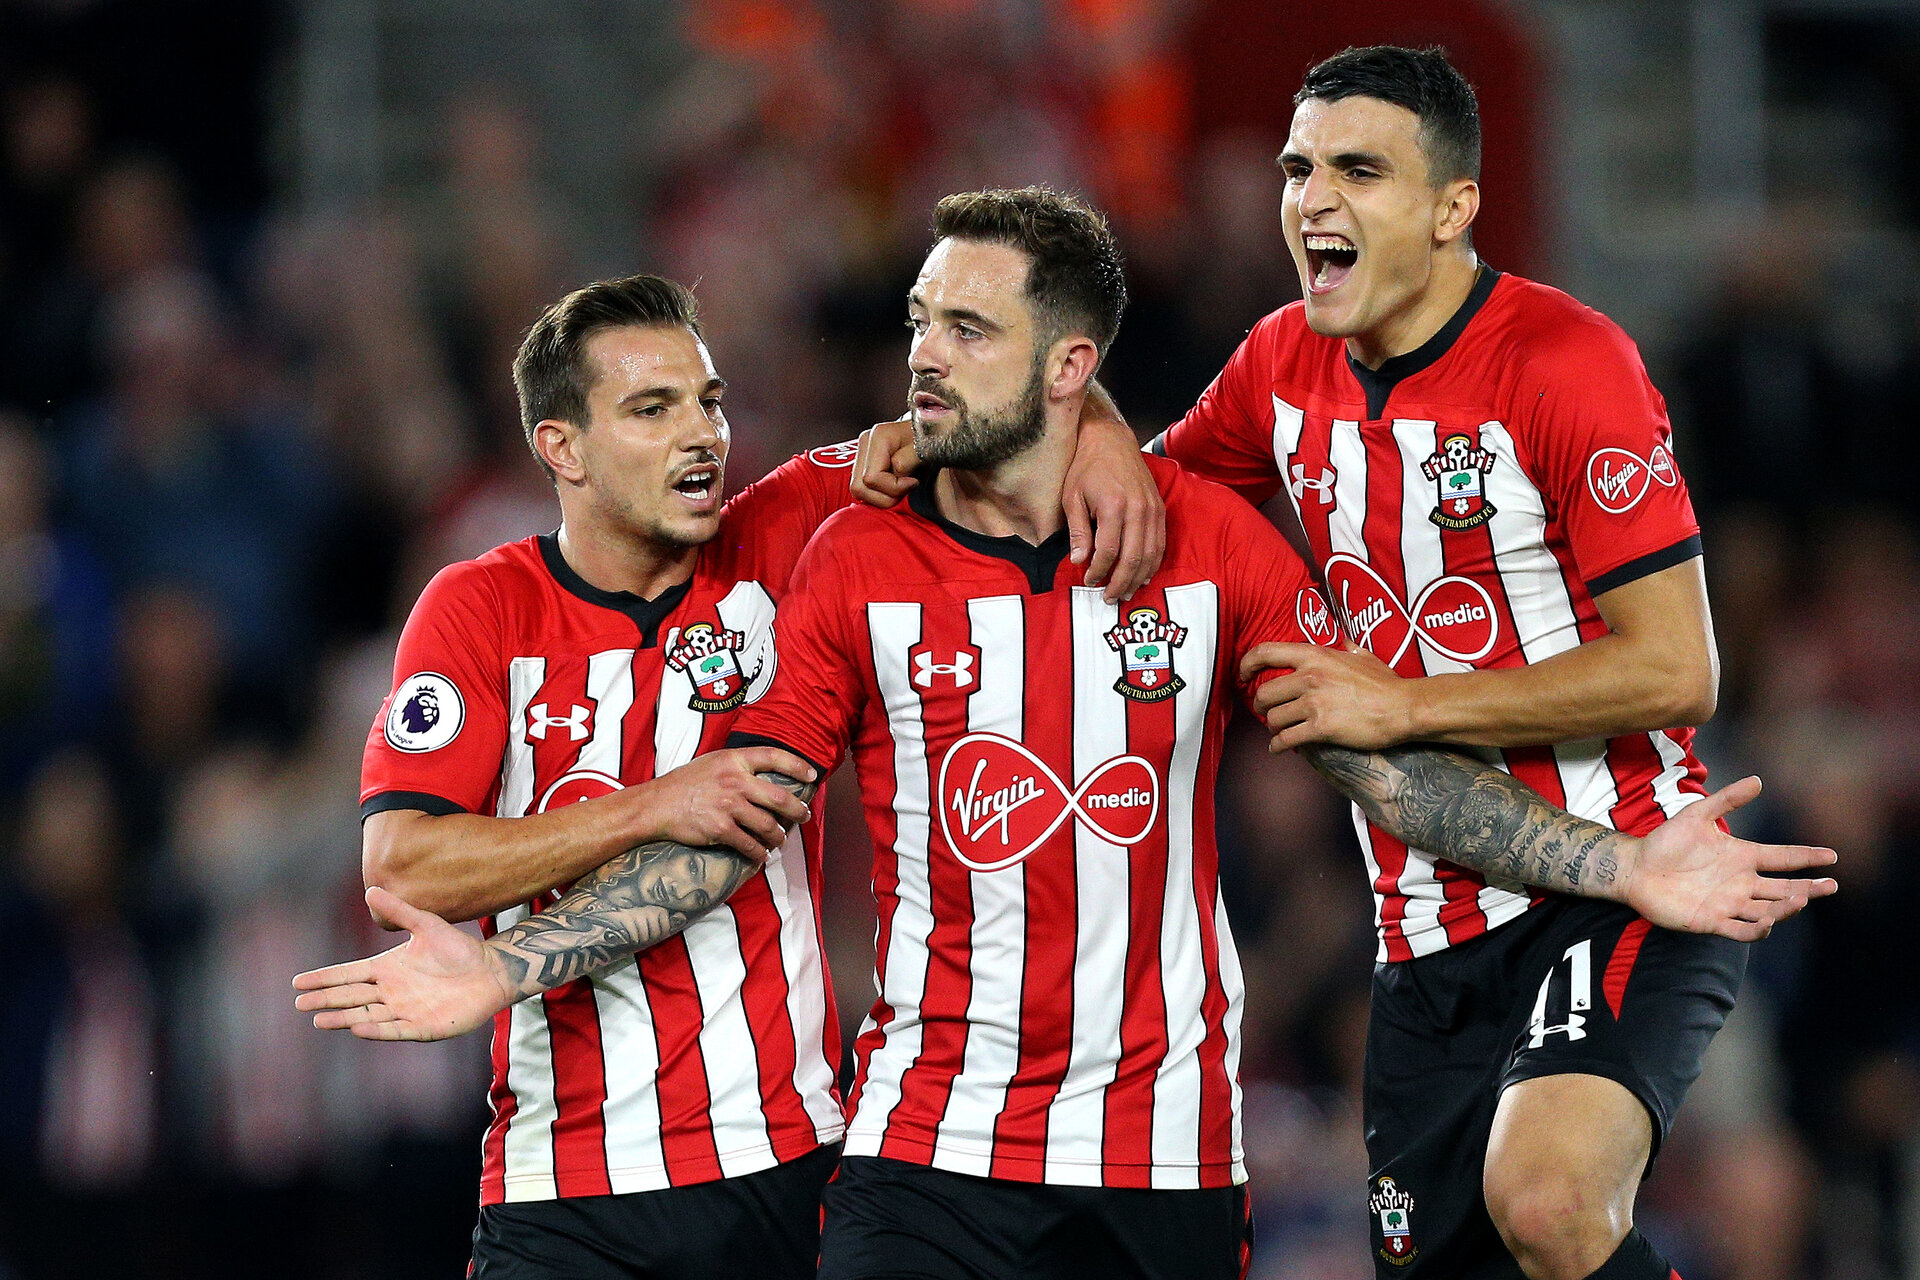 SOUTHAMPTON, ENGLAND - SEPTEMBER 17: Danny Ings of Southampton celebrates after scoring his team's second goal with Cedric Soares of Southampton and Mohamed Elyounoussi of Southampton during the Premier League match between Southampton FC and Brighton & Hove Albion at St Mary's Stadium on September 17, 2018 in Southampton, United Kingdom.  (Photo by Southampton FC/Southampton FC via Getty Images) *** Local Caption *** Danny Ings;Cedric Soares;Mohamed Elyounoussi SOUTHAMPTON, ENGLAND - SEPTEMBER 17: Danny Ings of Southampton celebrates after scoring his team's second goal with Cedric Soares of Southampton and Mohamed Elyounoussi of Southampton during the Premier League match between Southampton FC and Brighton & Hove Albion at St Mary's Stadium on September 17, 2018 in Southampton, United Kingdom.  (Photo by Southampton FC/Southampton FC via Getty Images)